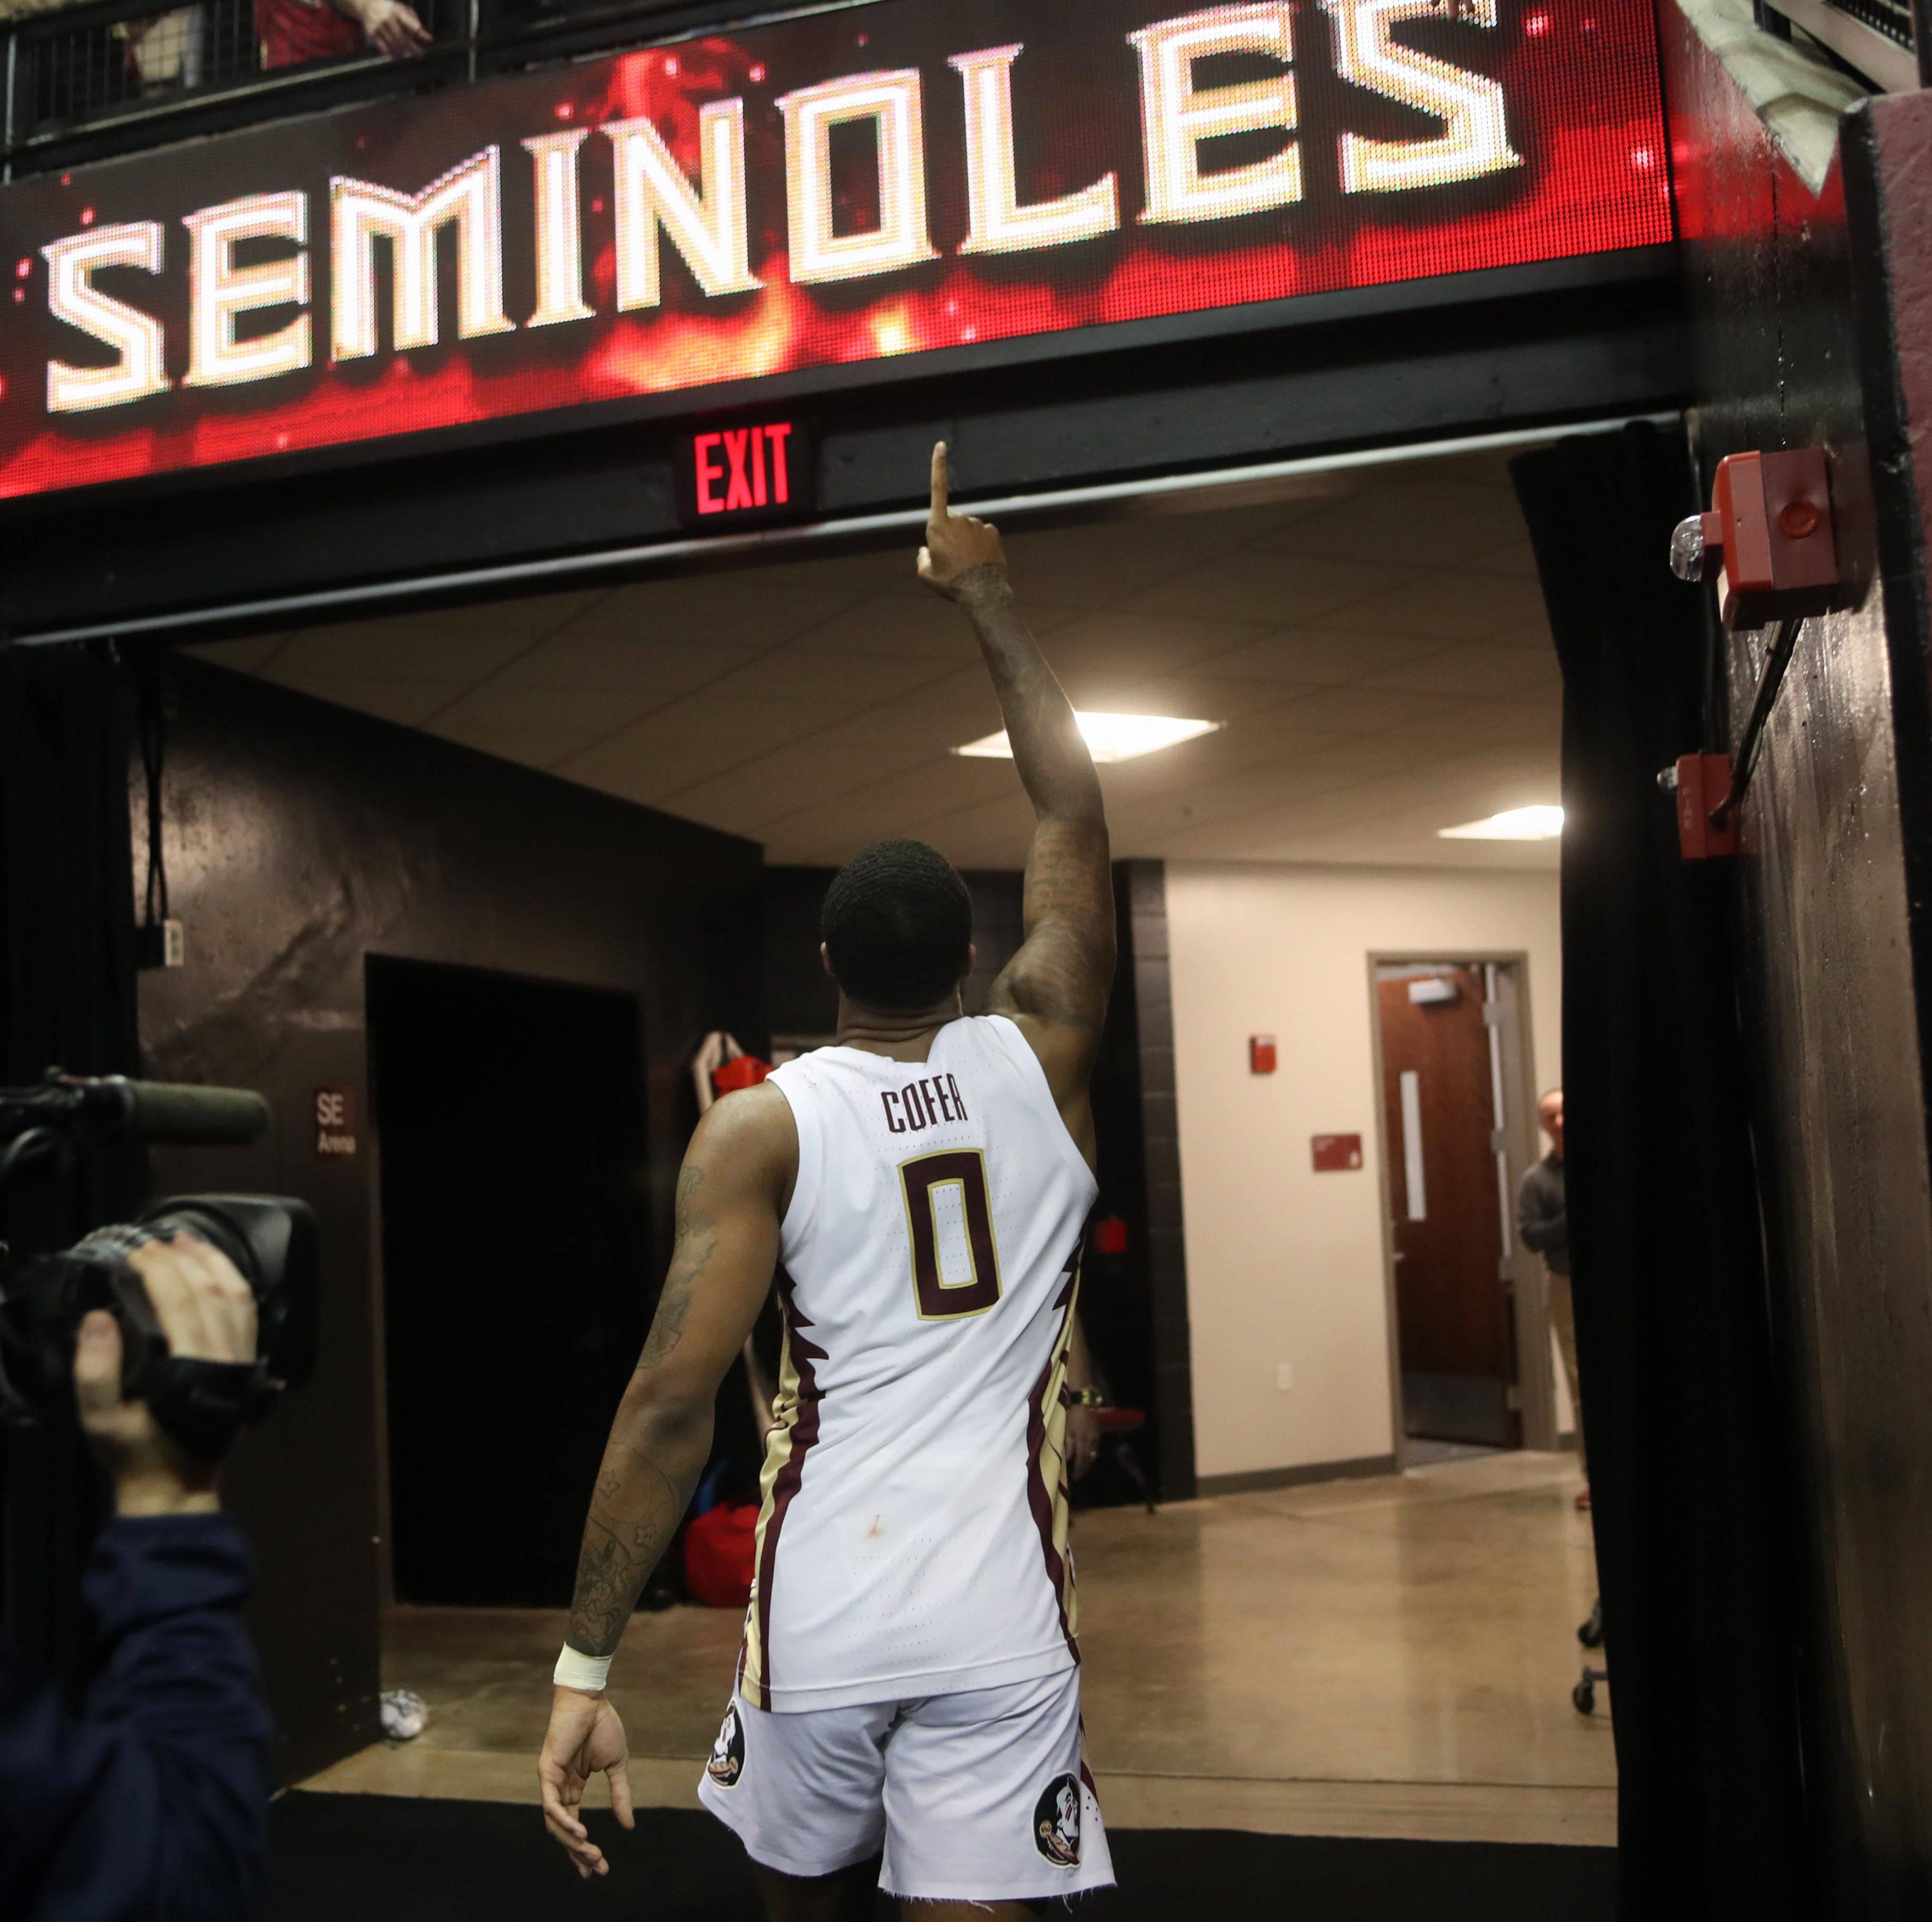 Florida State forward Phil Cofer staying with Seminoles as team rallies around him